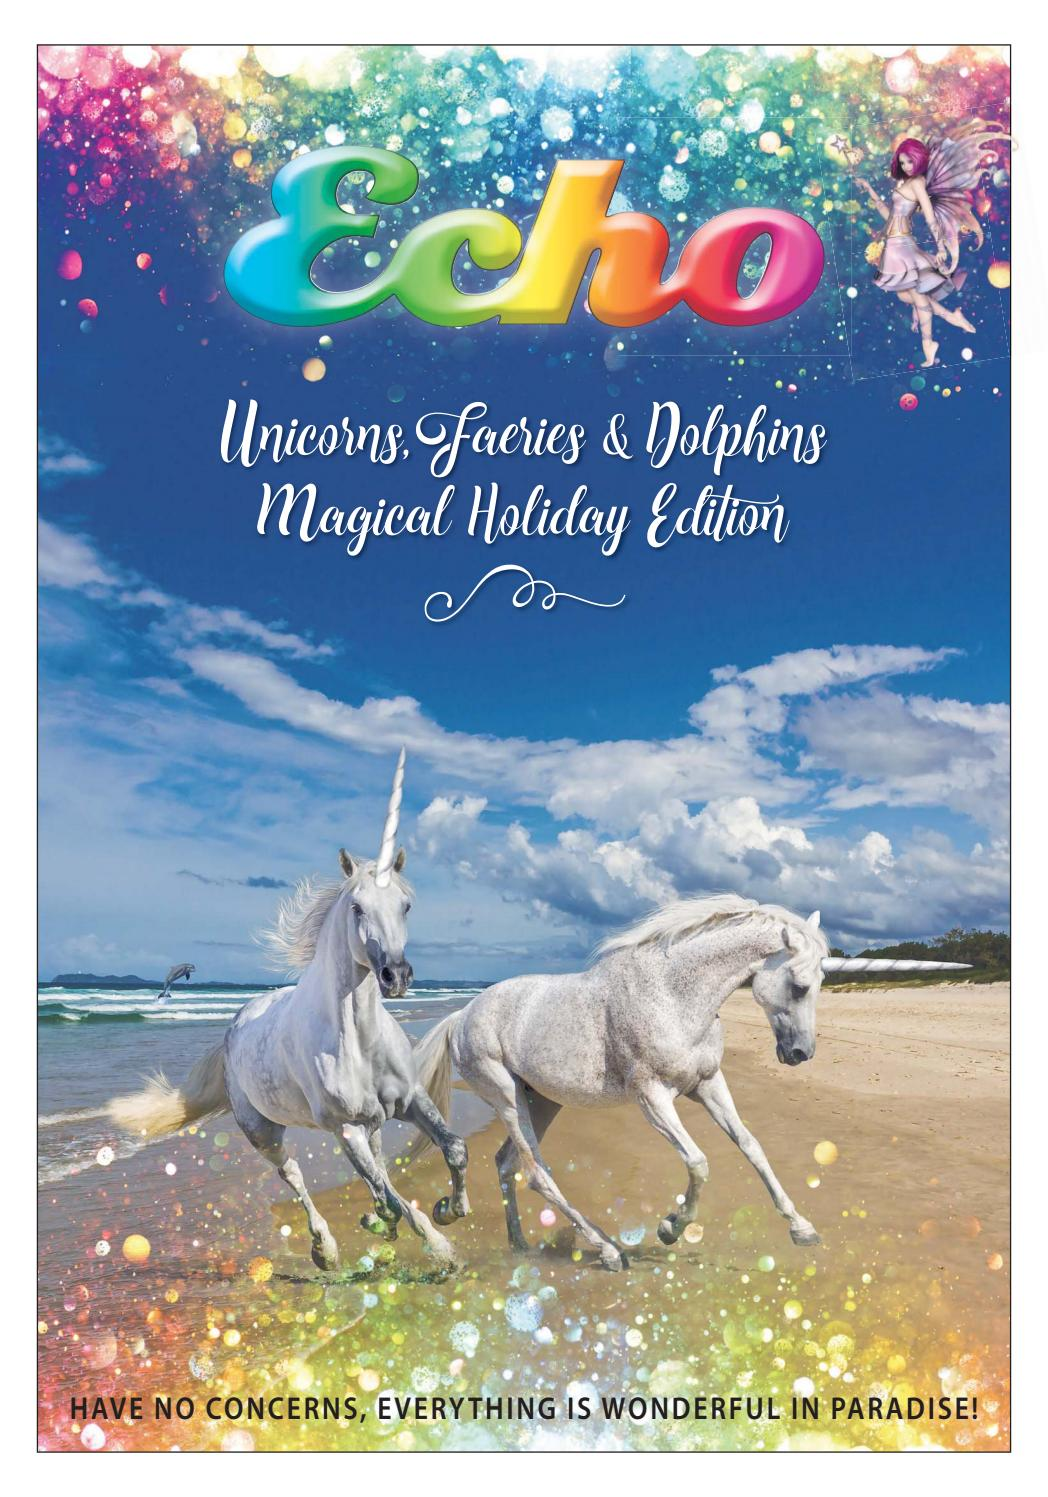 The byron shire echo december 20 2017 by echo publications issuu kristyandbryce Gallery